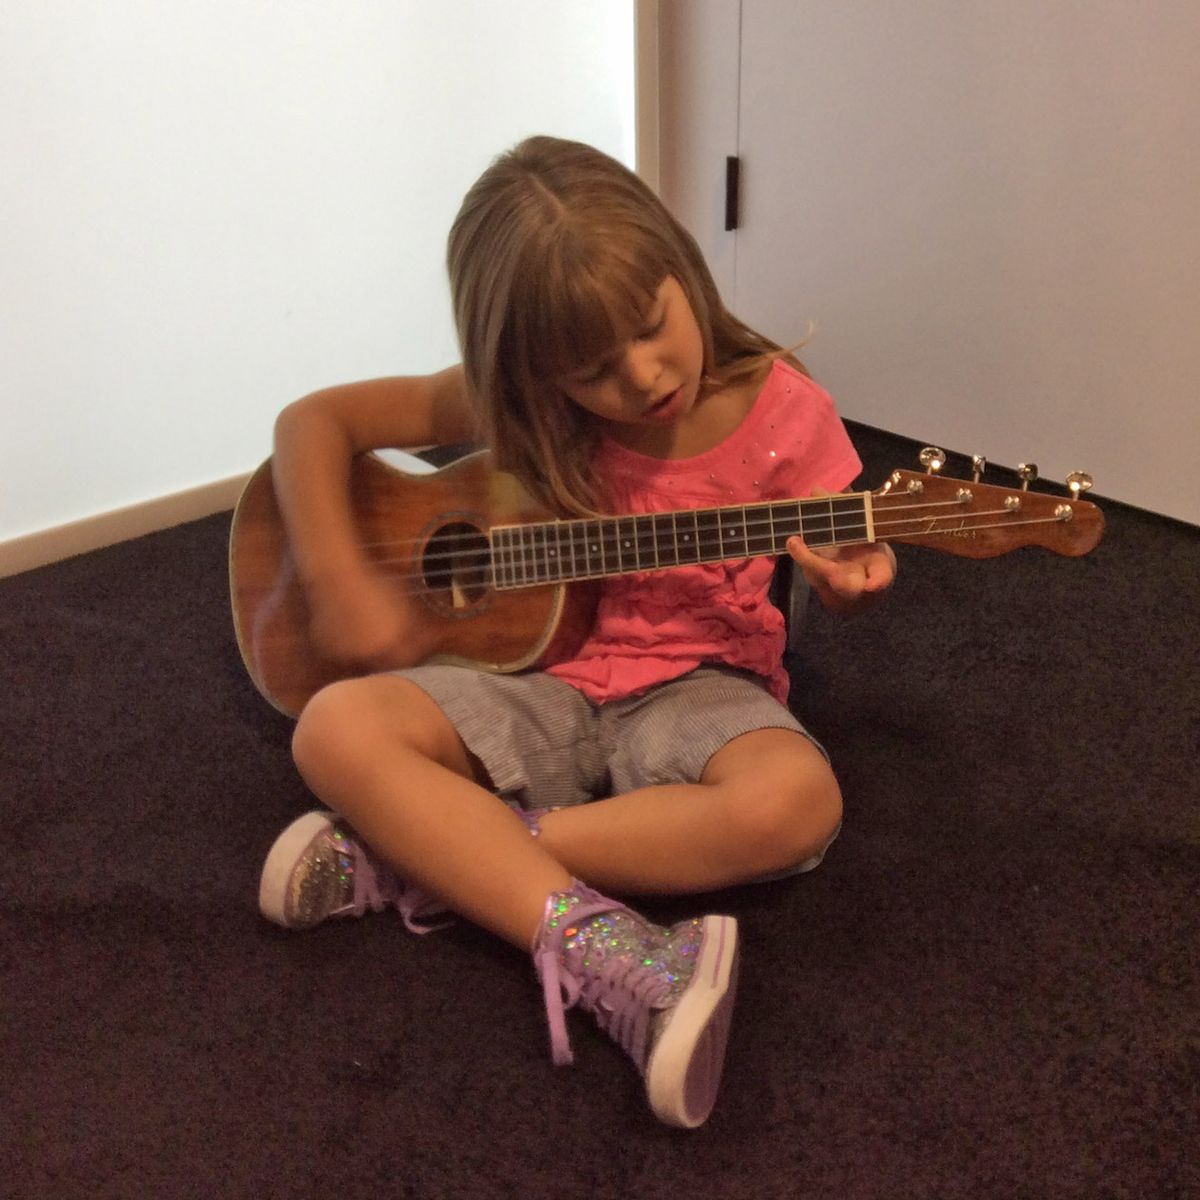 Tuning Up: Small Thoughts in a Big World